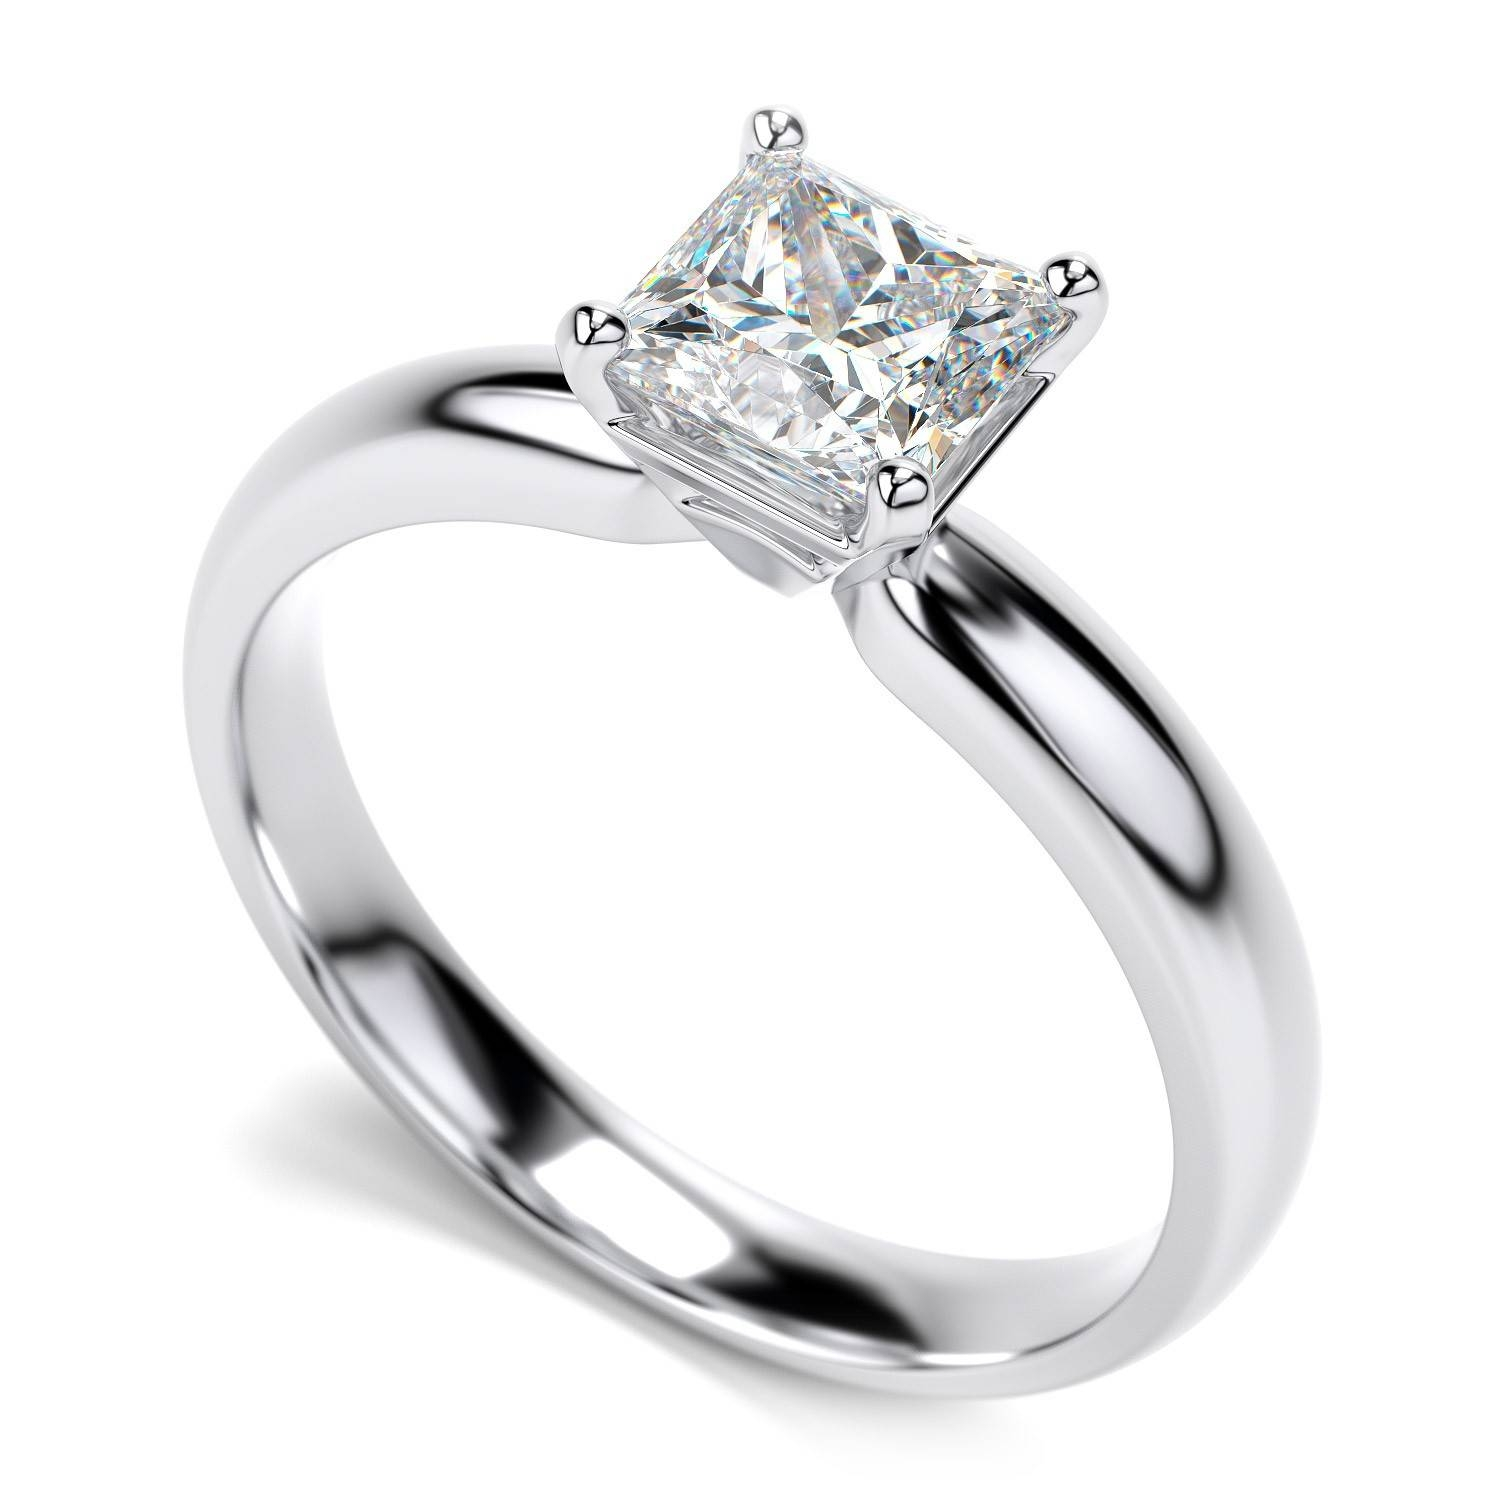 Tips And The 4 Cs To Choose Your Diamond Engagement Rings Within Princess Shaped Engagement Rings (Gallery 1 of 15)